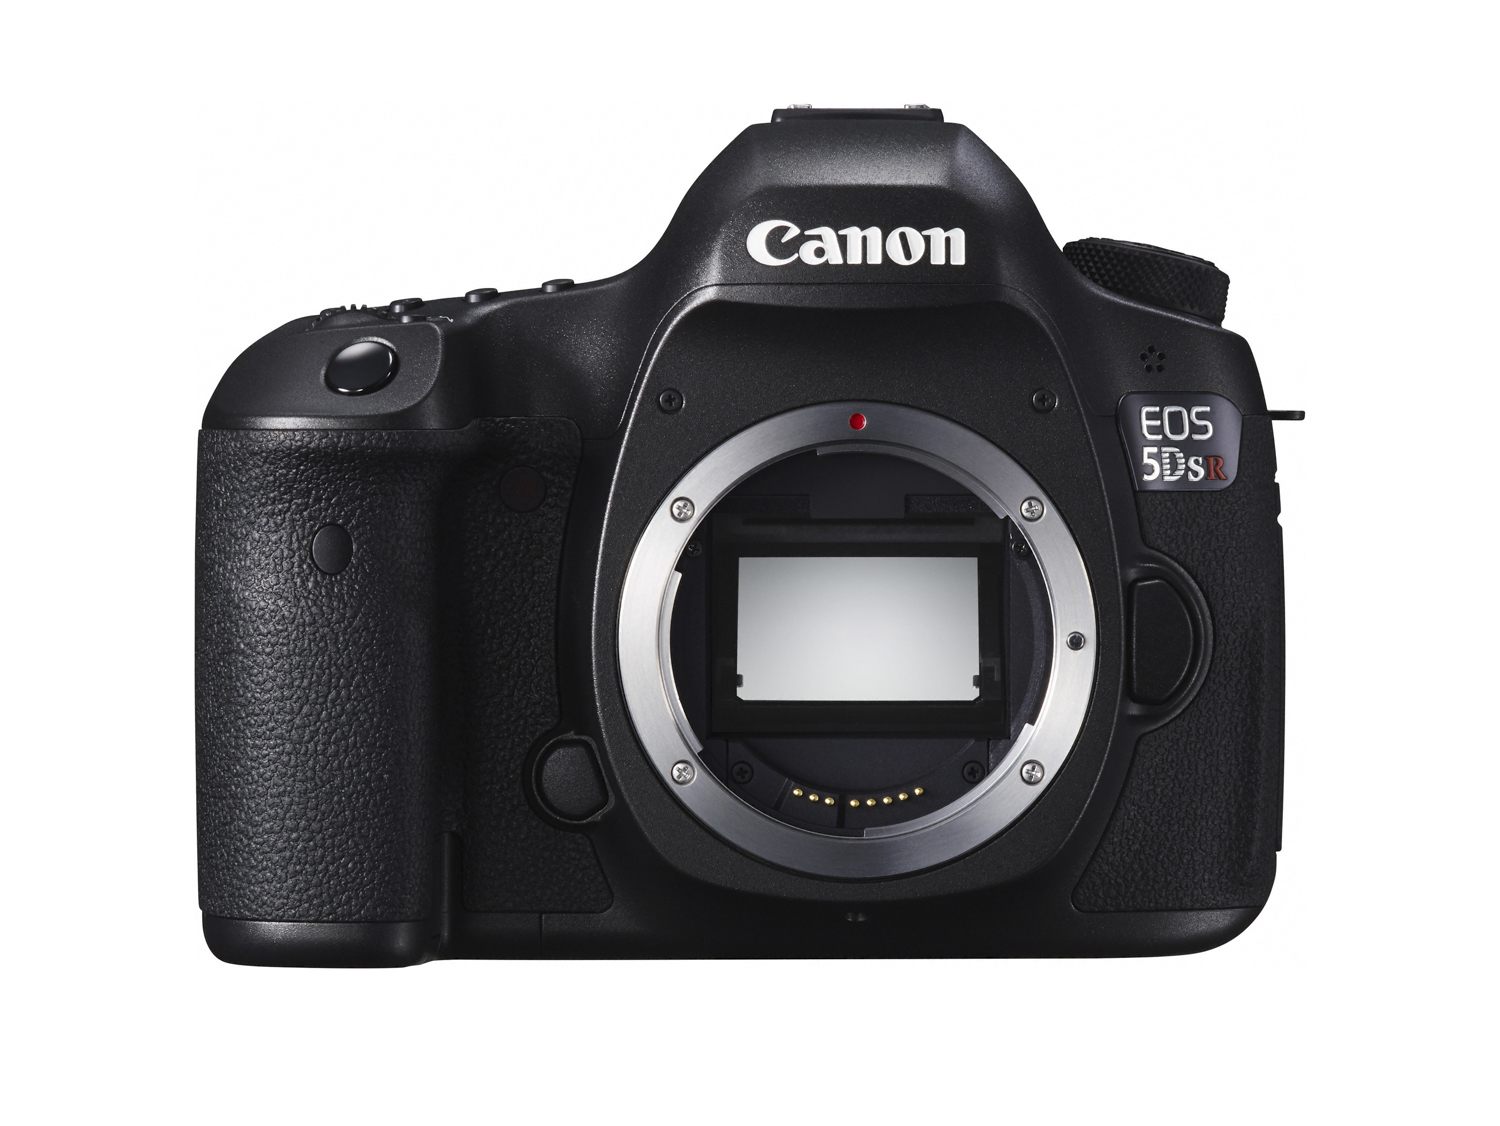 The Canon 5DS R